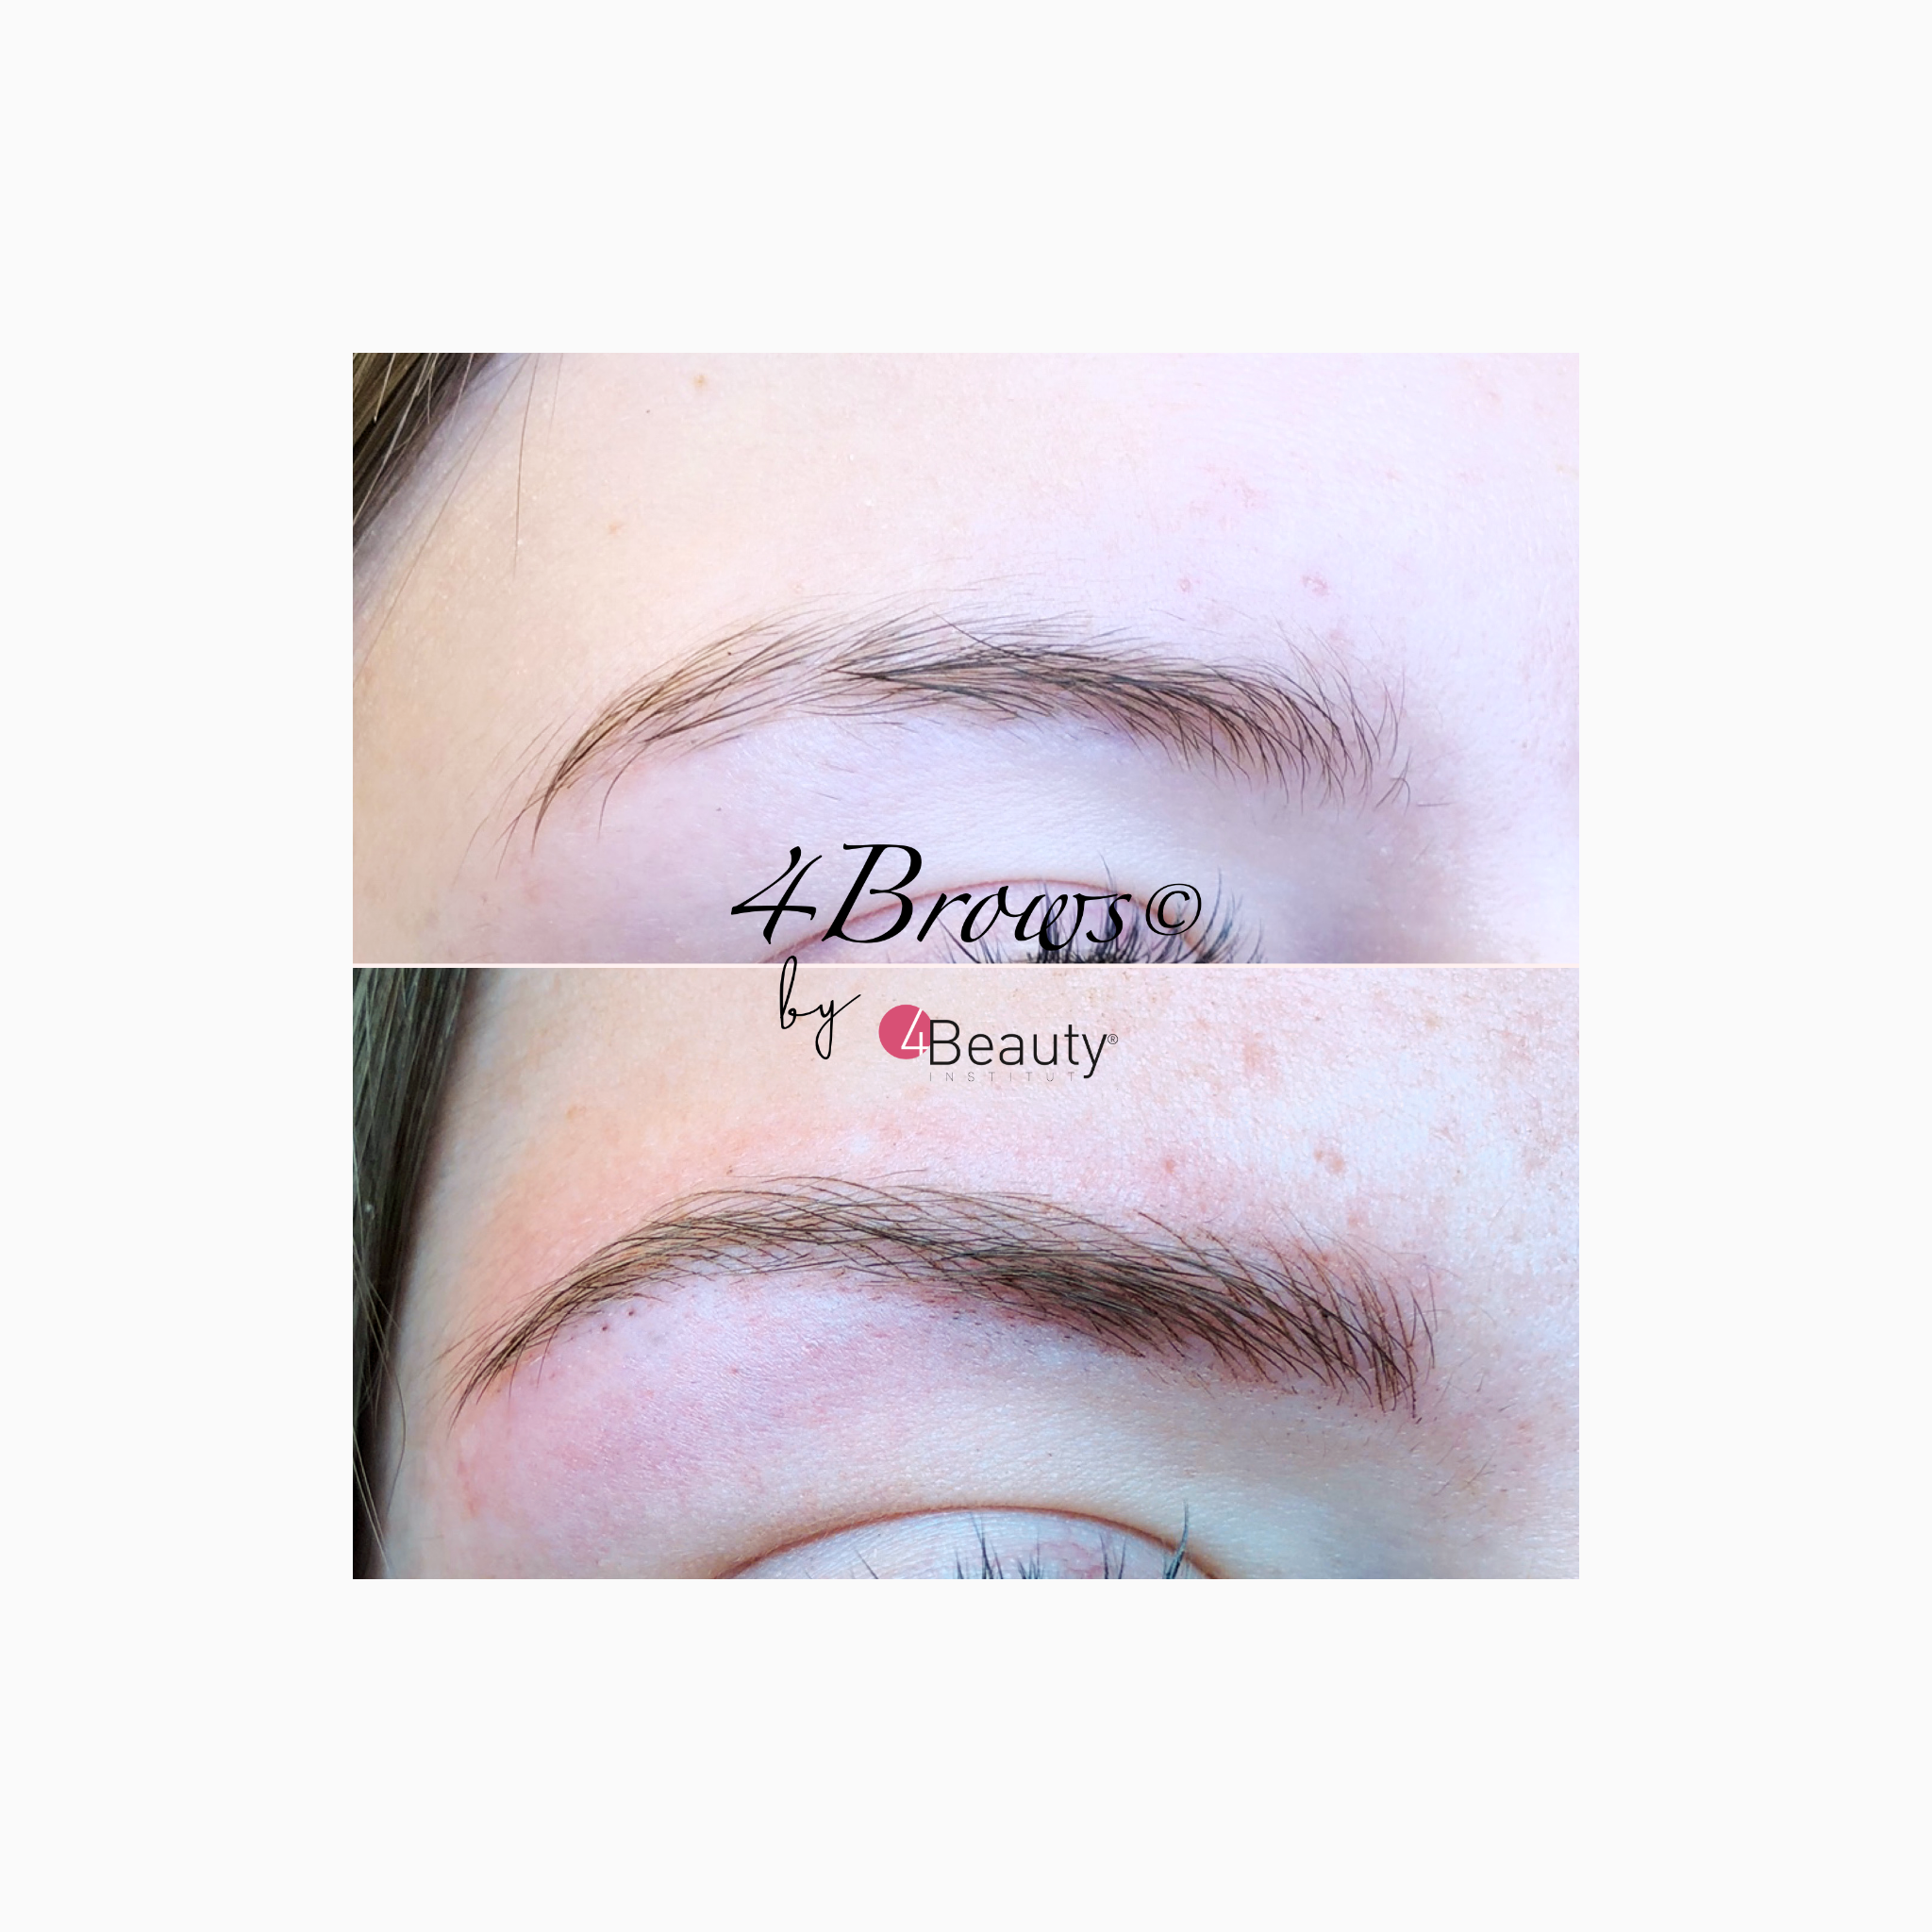 mb 4brows